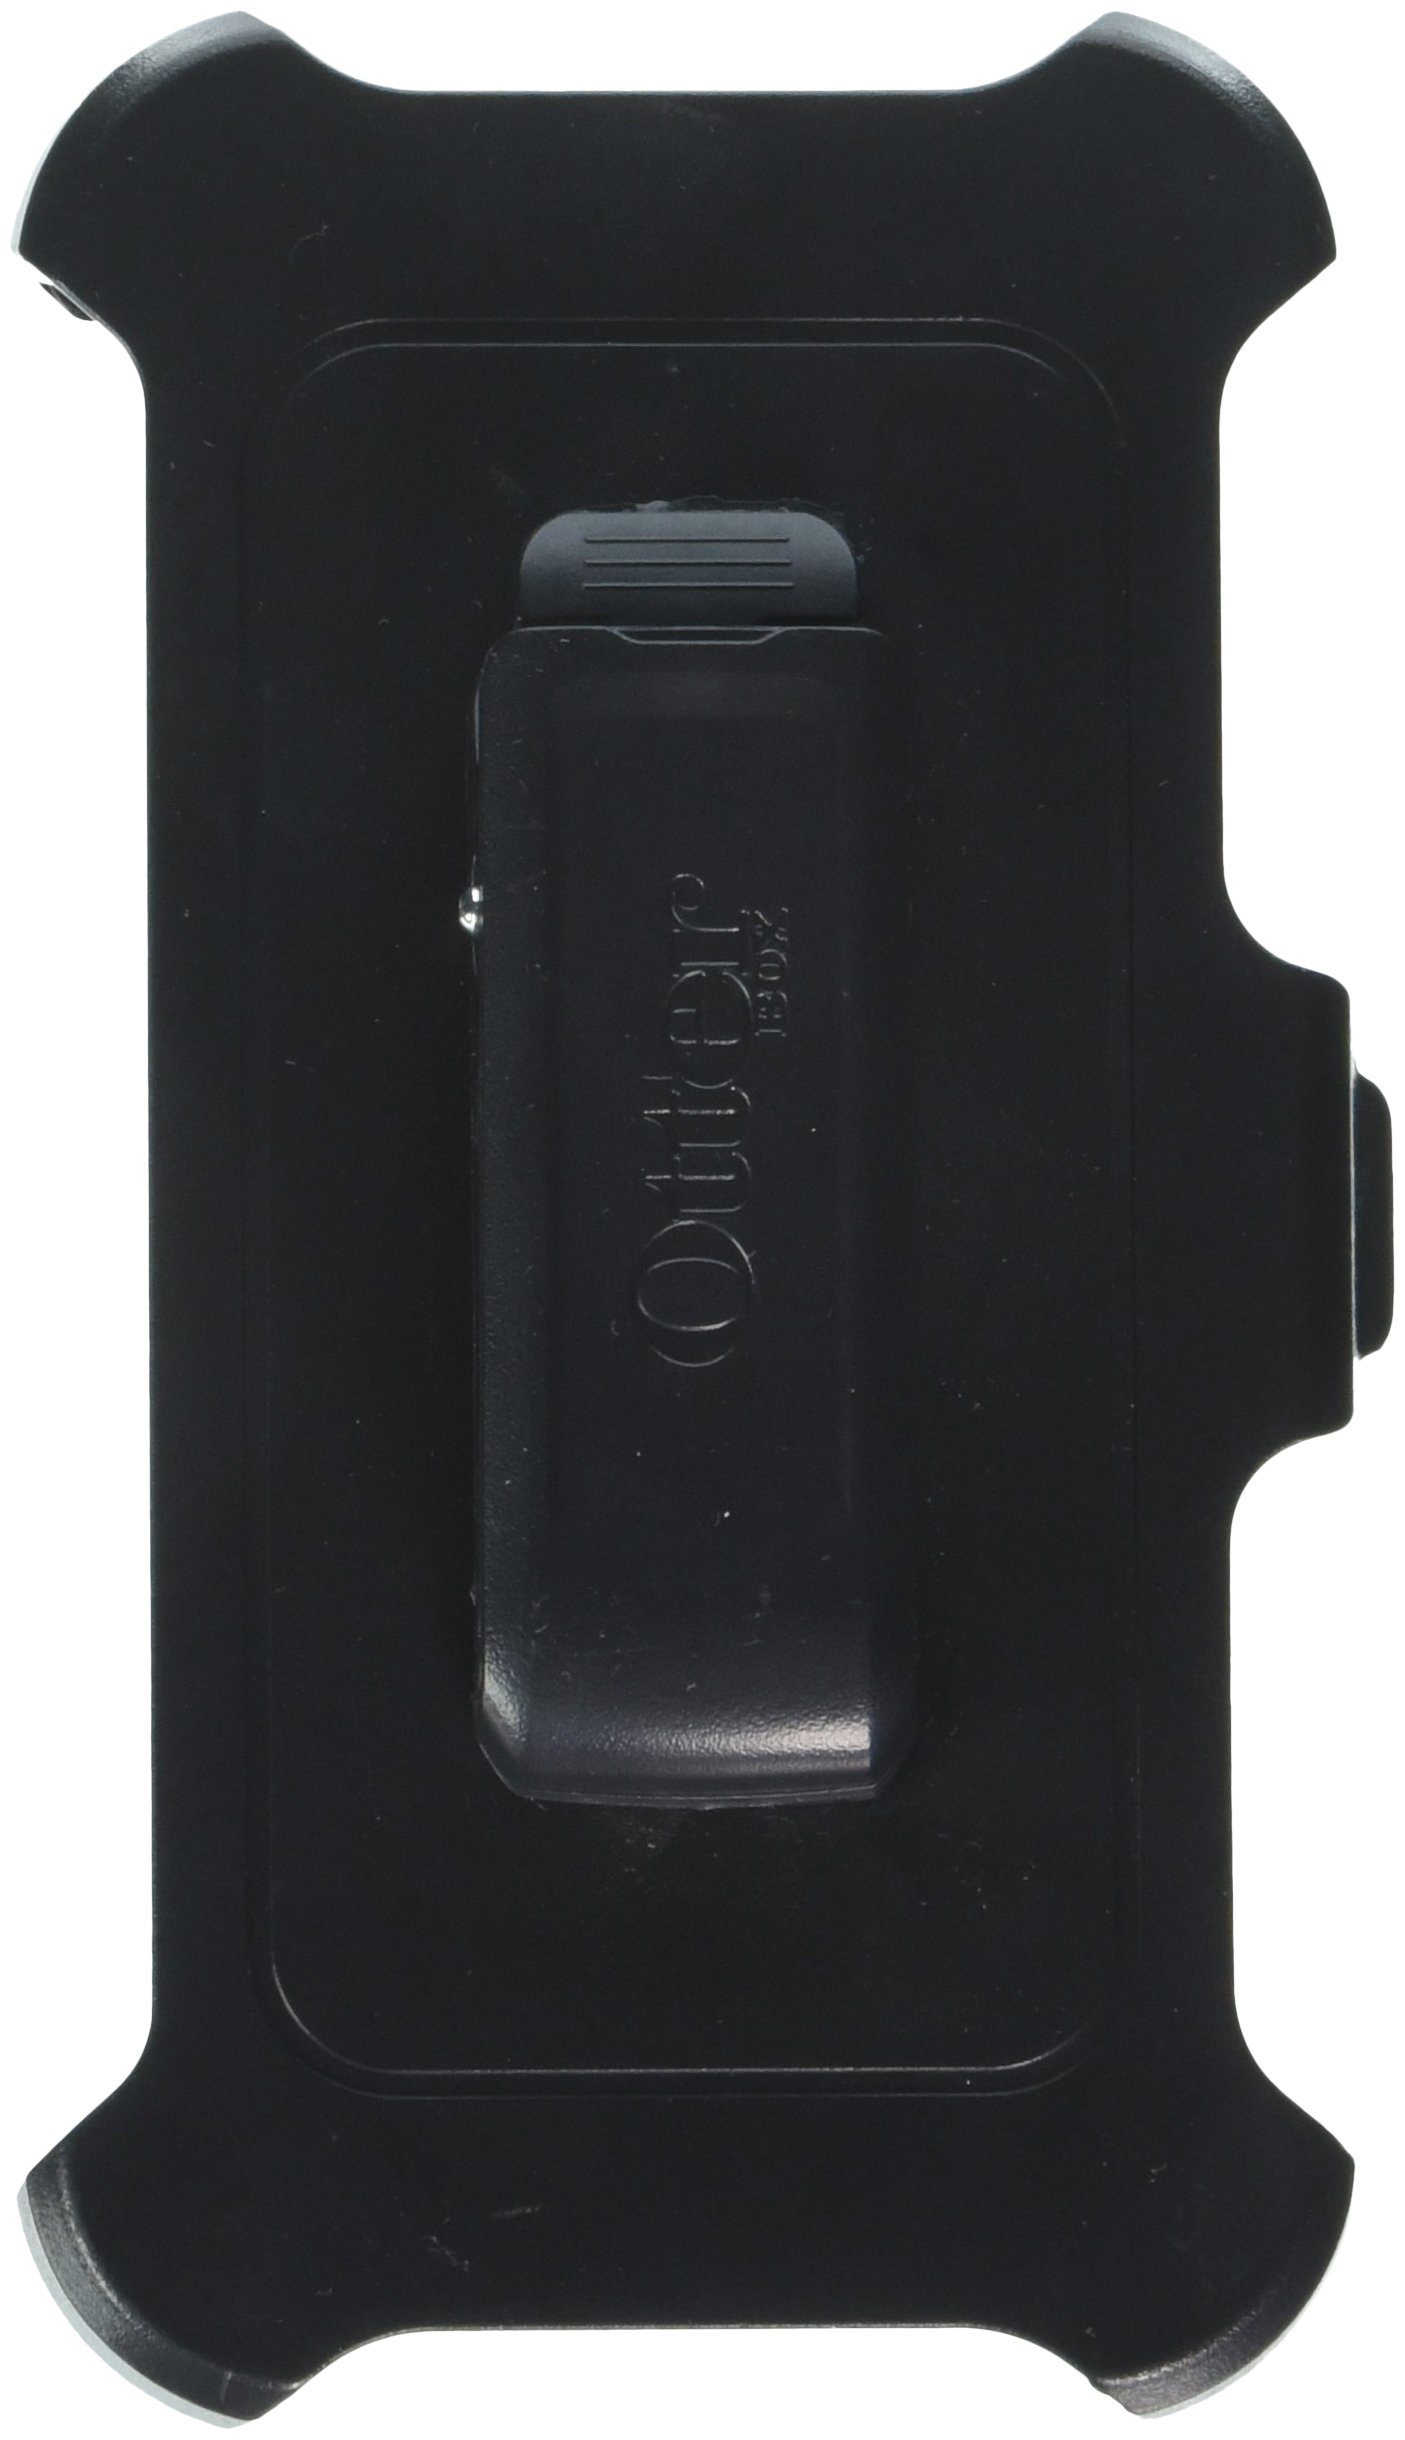 OtterBox Holster Belt Clip for OtterBox Defender Series Apple iPhone 6/6s Case - Black - Non-Retail Packaging (Not Intended for Stand-Alone Use)